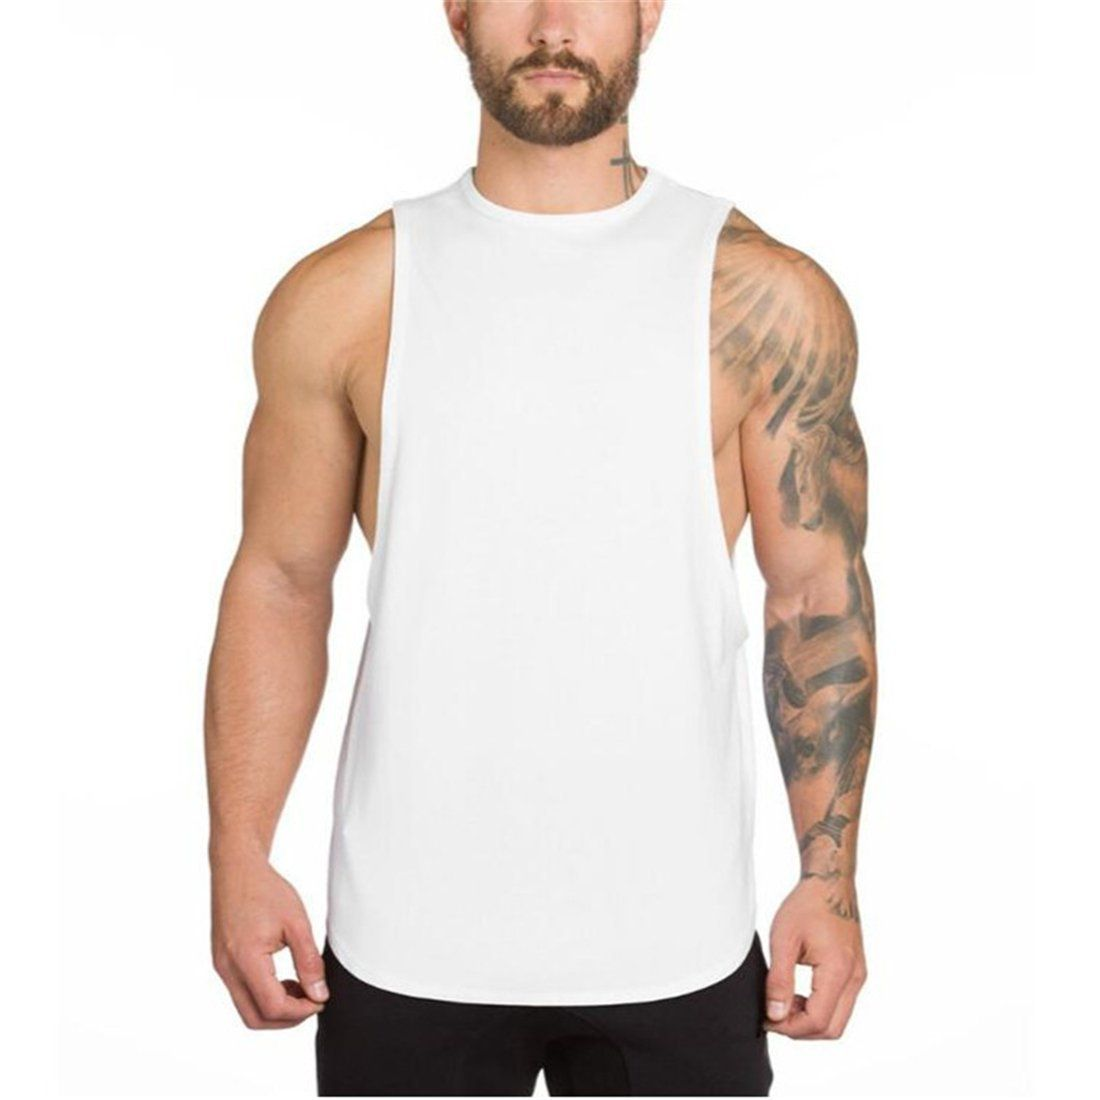 56dd24879 YeeHoo Men's Fitted Muscle Stringer Vest Cut Open Sides Workout Tank Tops  Gym Bodybuilding T-Shirts